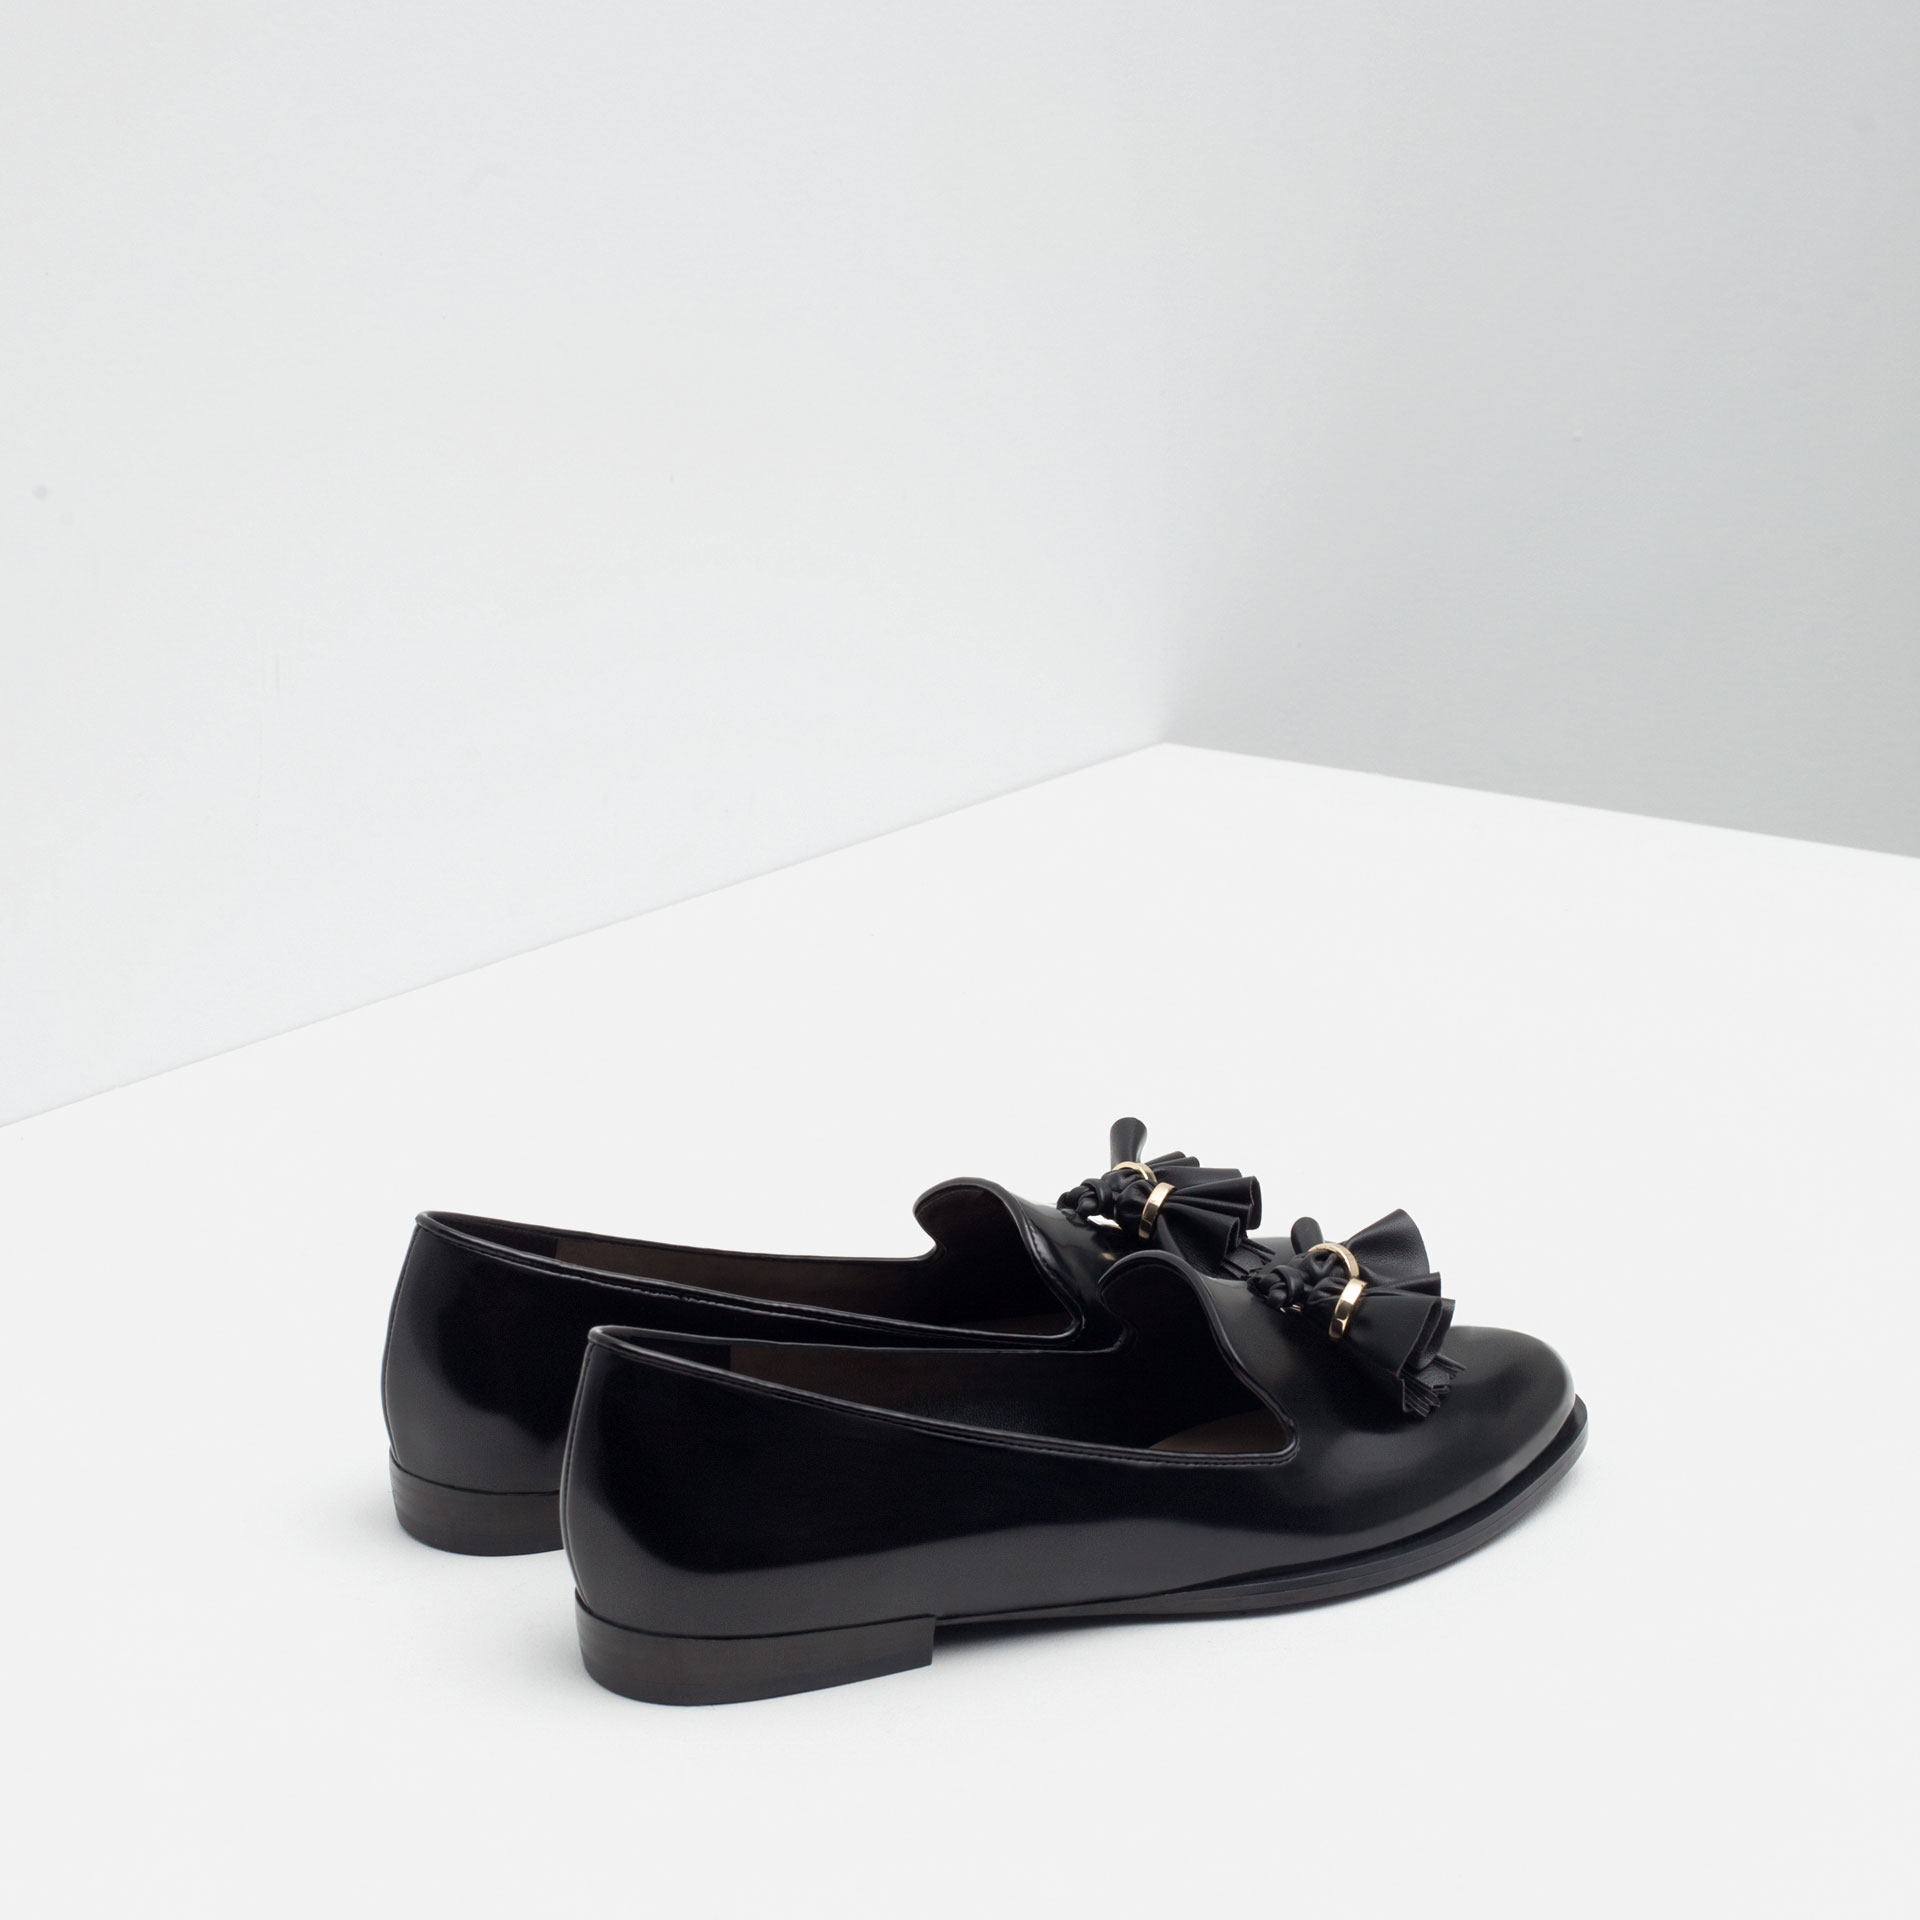 Creative Zara  Multicolor Flat Shoes With Metal Heel Detail  Lyst